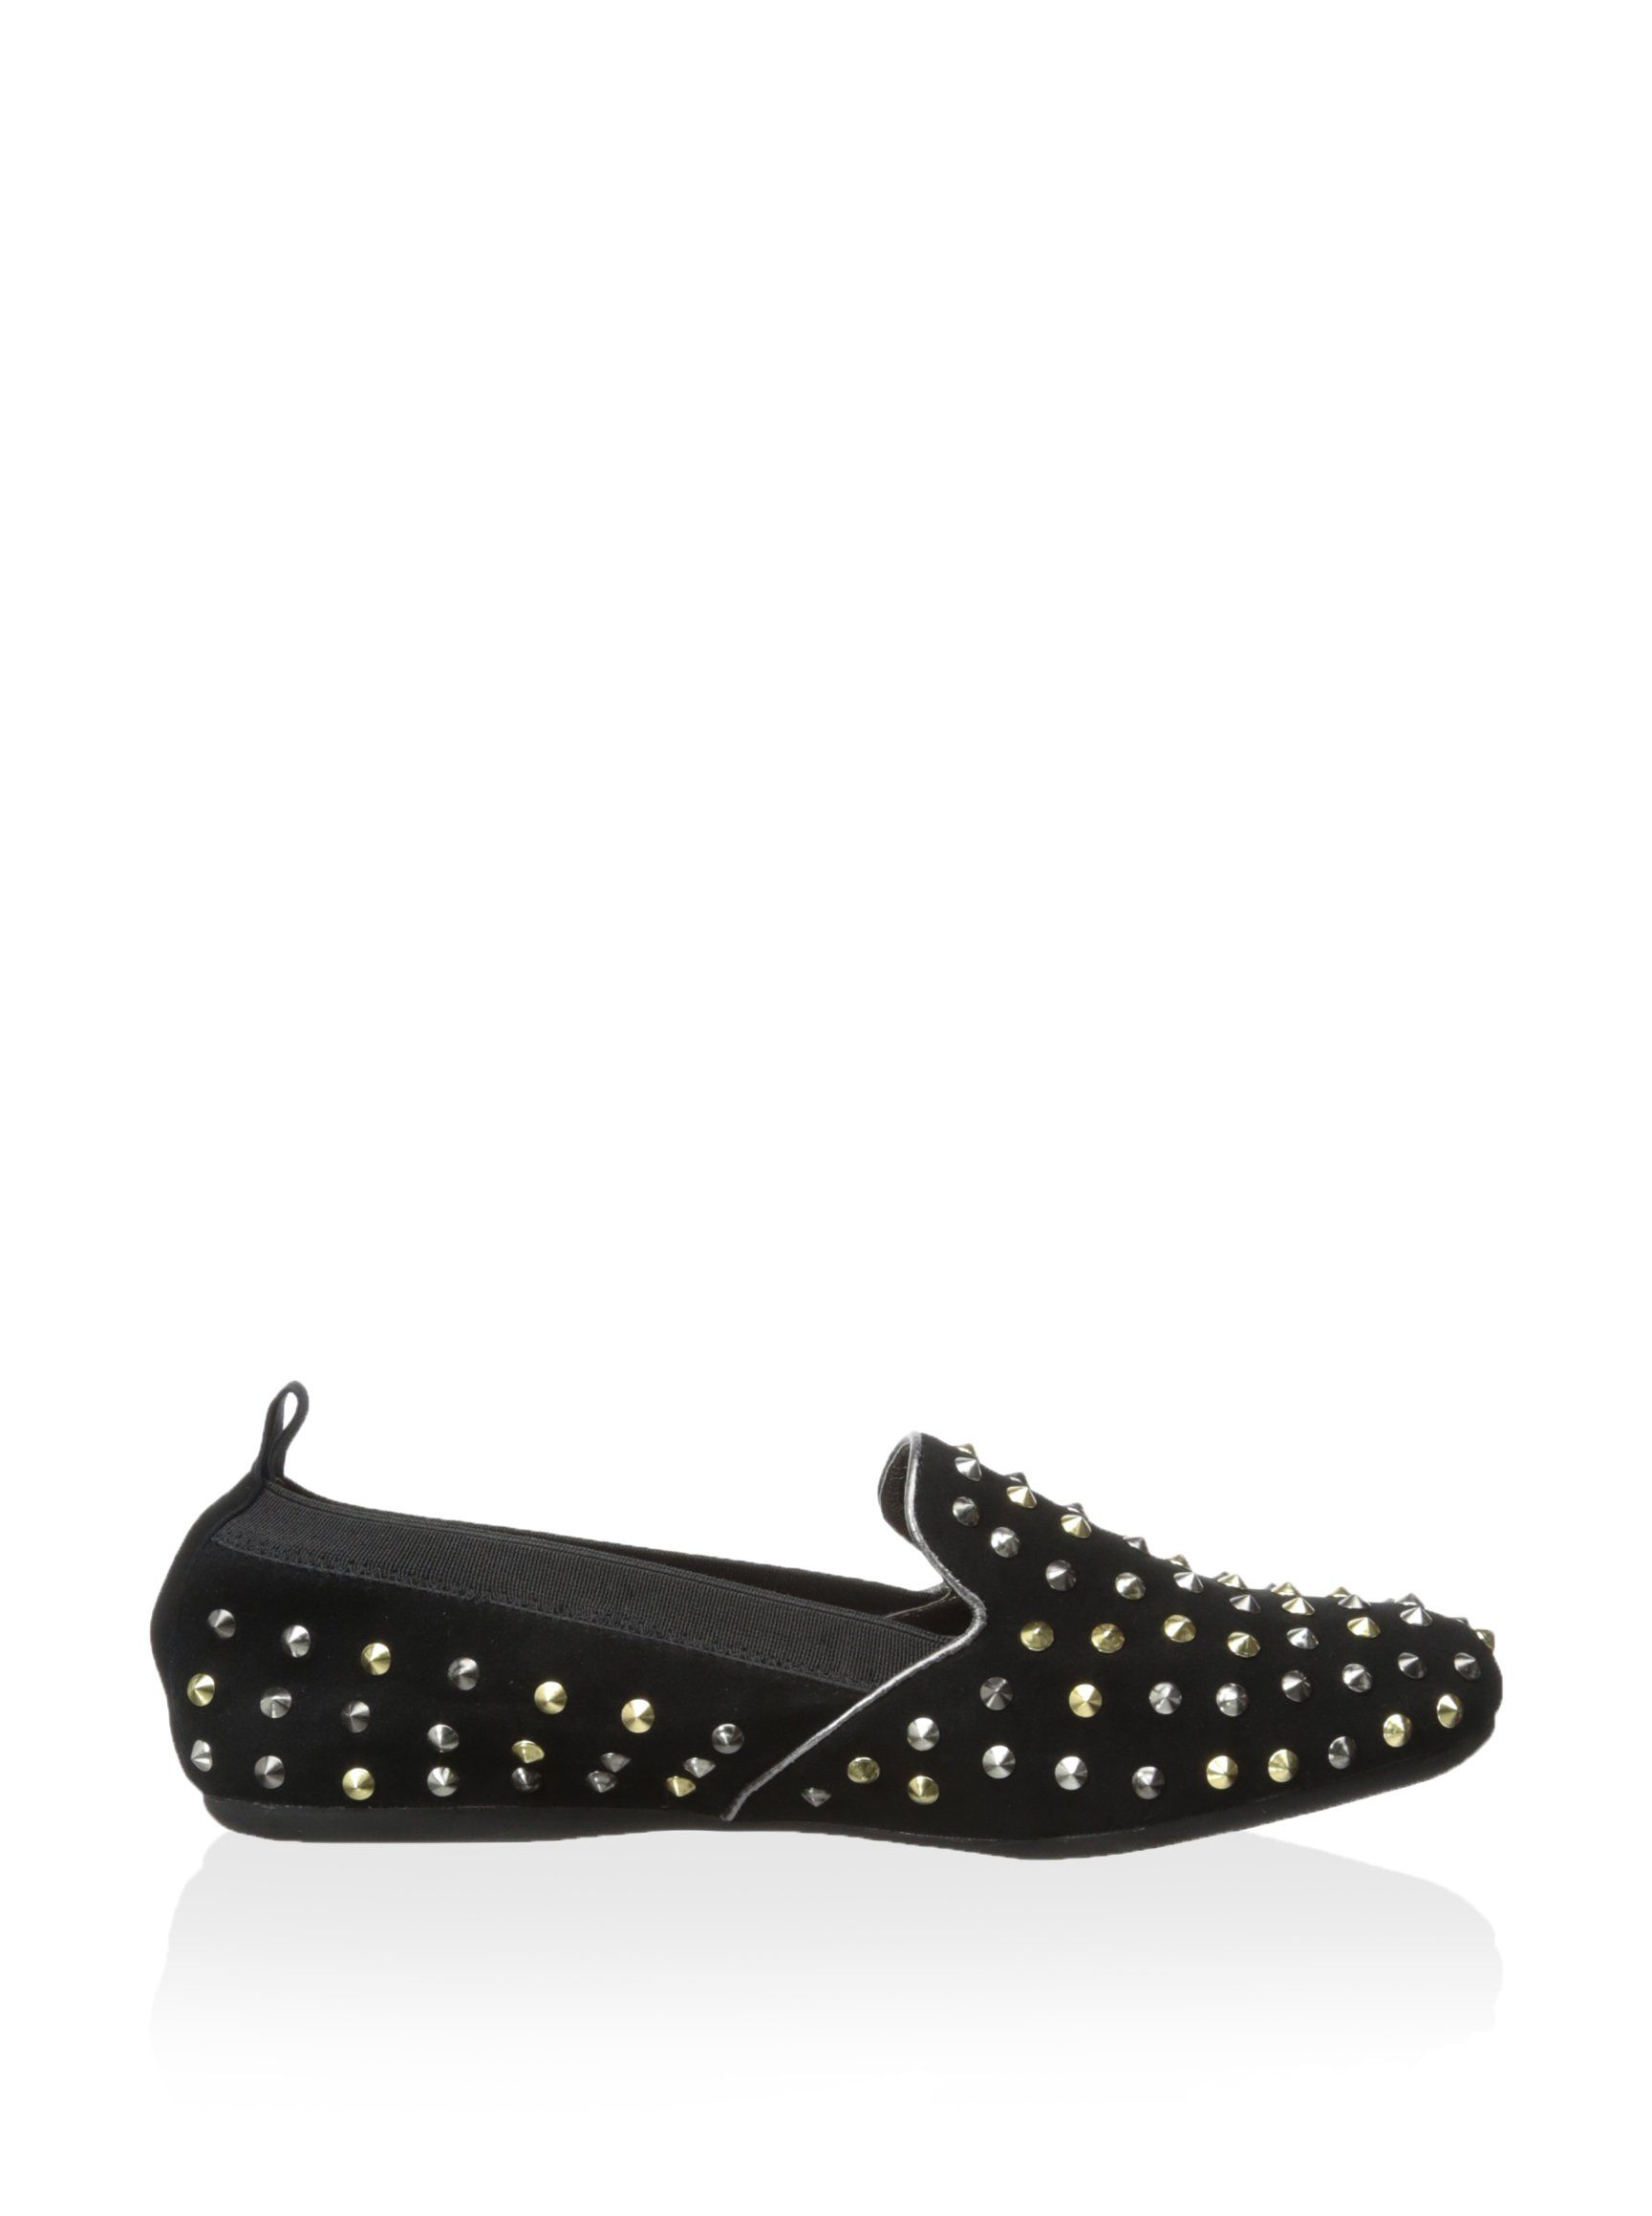 Yosi Samra Women's Studded Smoking Flat at MYHABIT